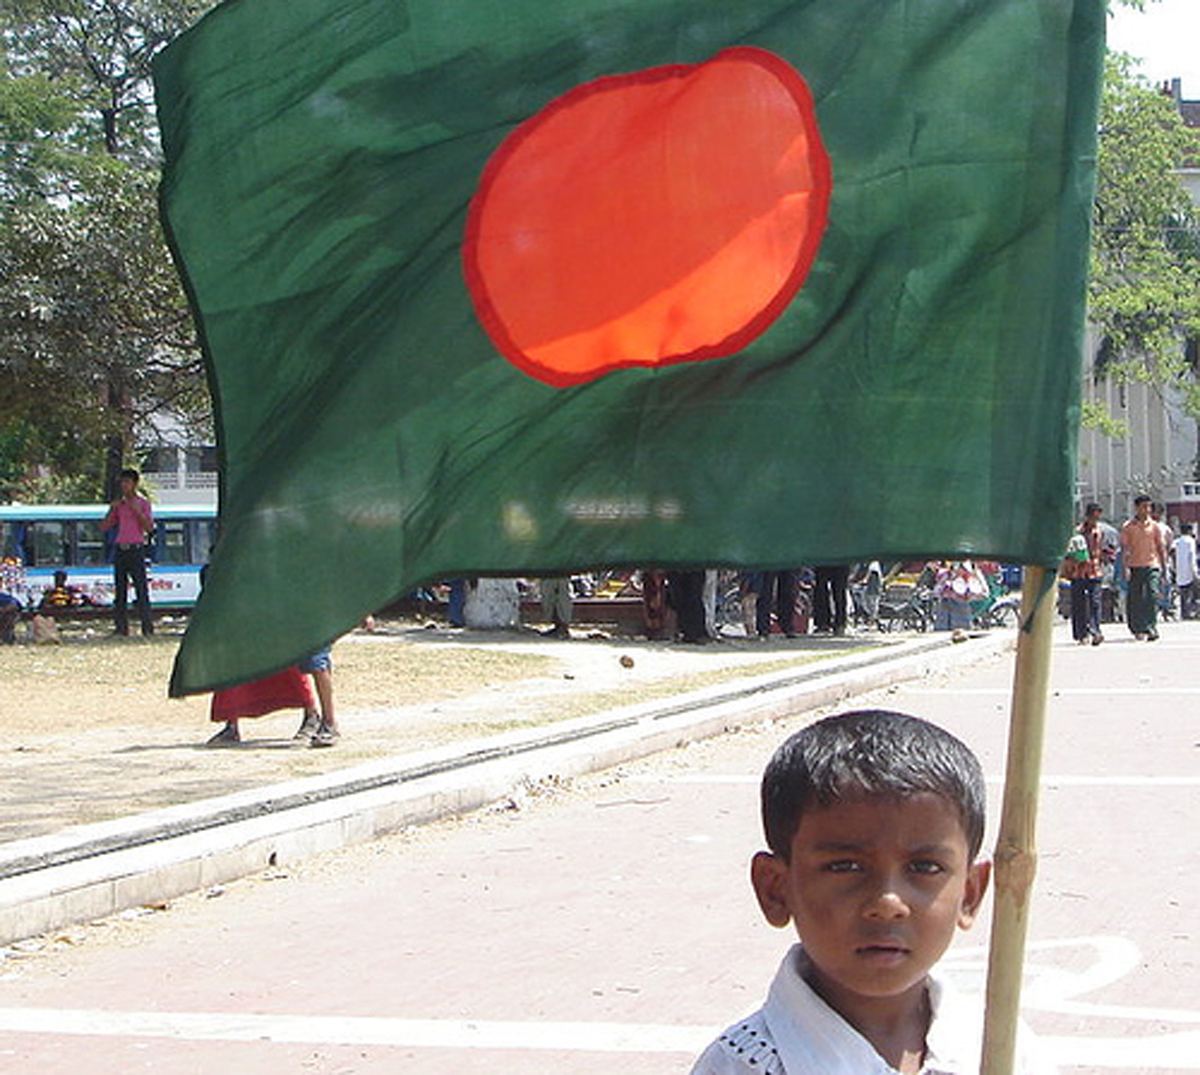 http://3.bp.blogspot.com/-RYB-1MU9dsw/TeT-lL8M0_I/AAAAAAAABIU/3tHkz8AXdis/s1600/graphics+wallpapers+Flag+of+Bangladesh.jpg